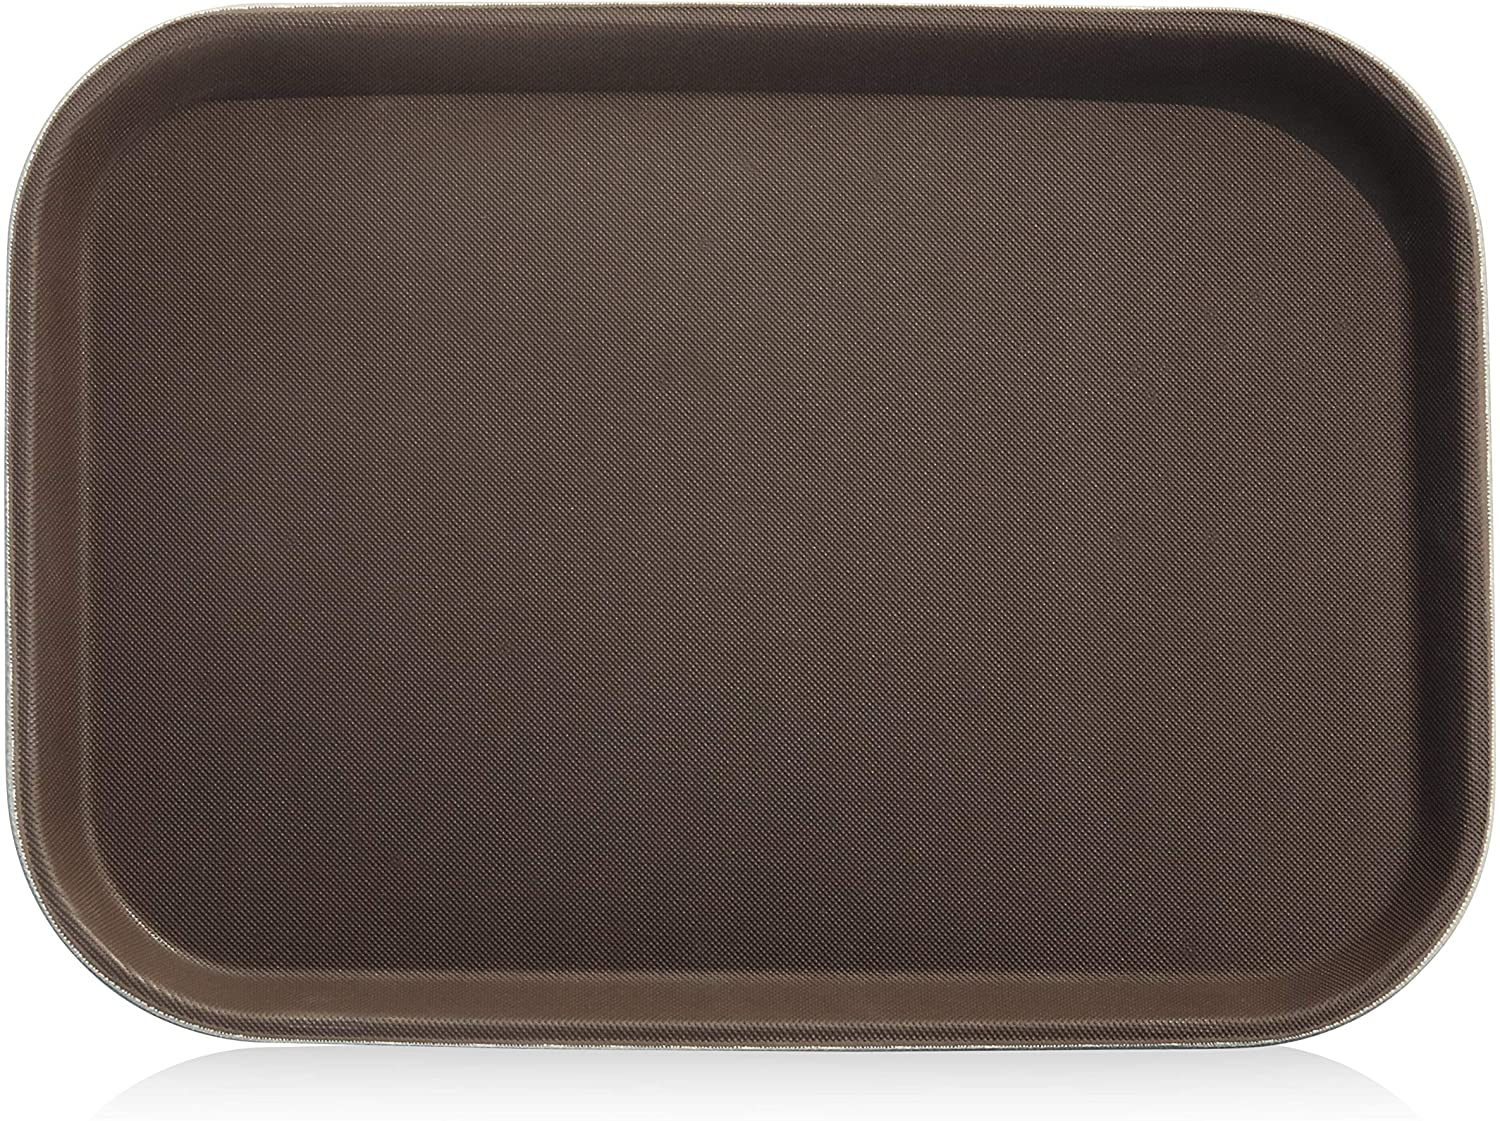 New Star Foodservice 24883 Non-Slip Tray, Plastic, Rubber Lined, Rectangular, 10 by 14-Inch, Brown